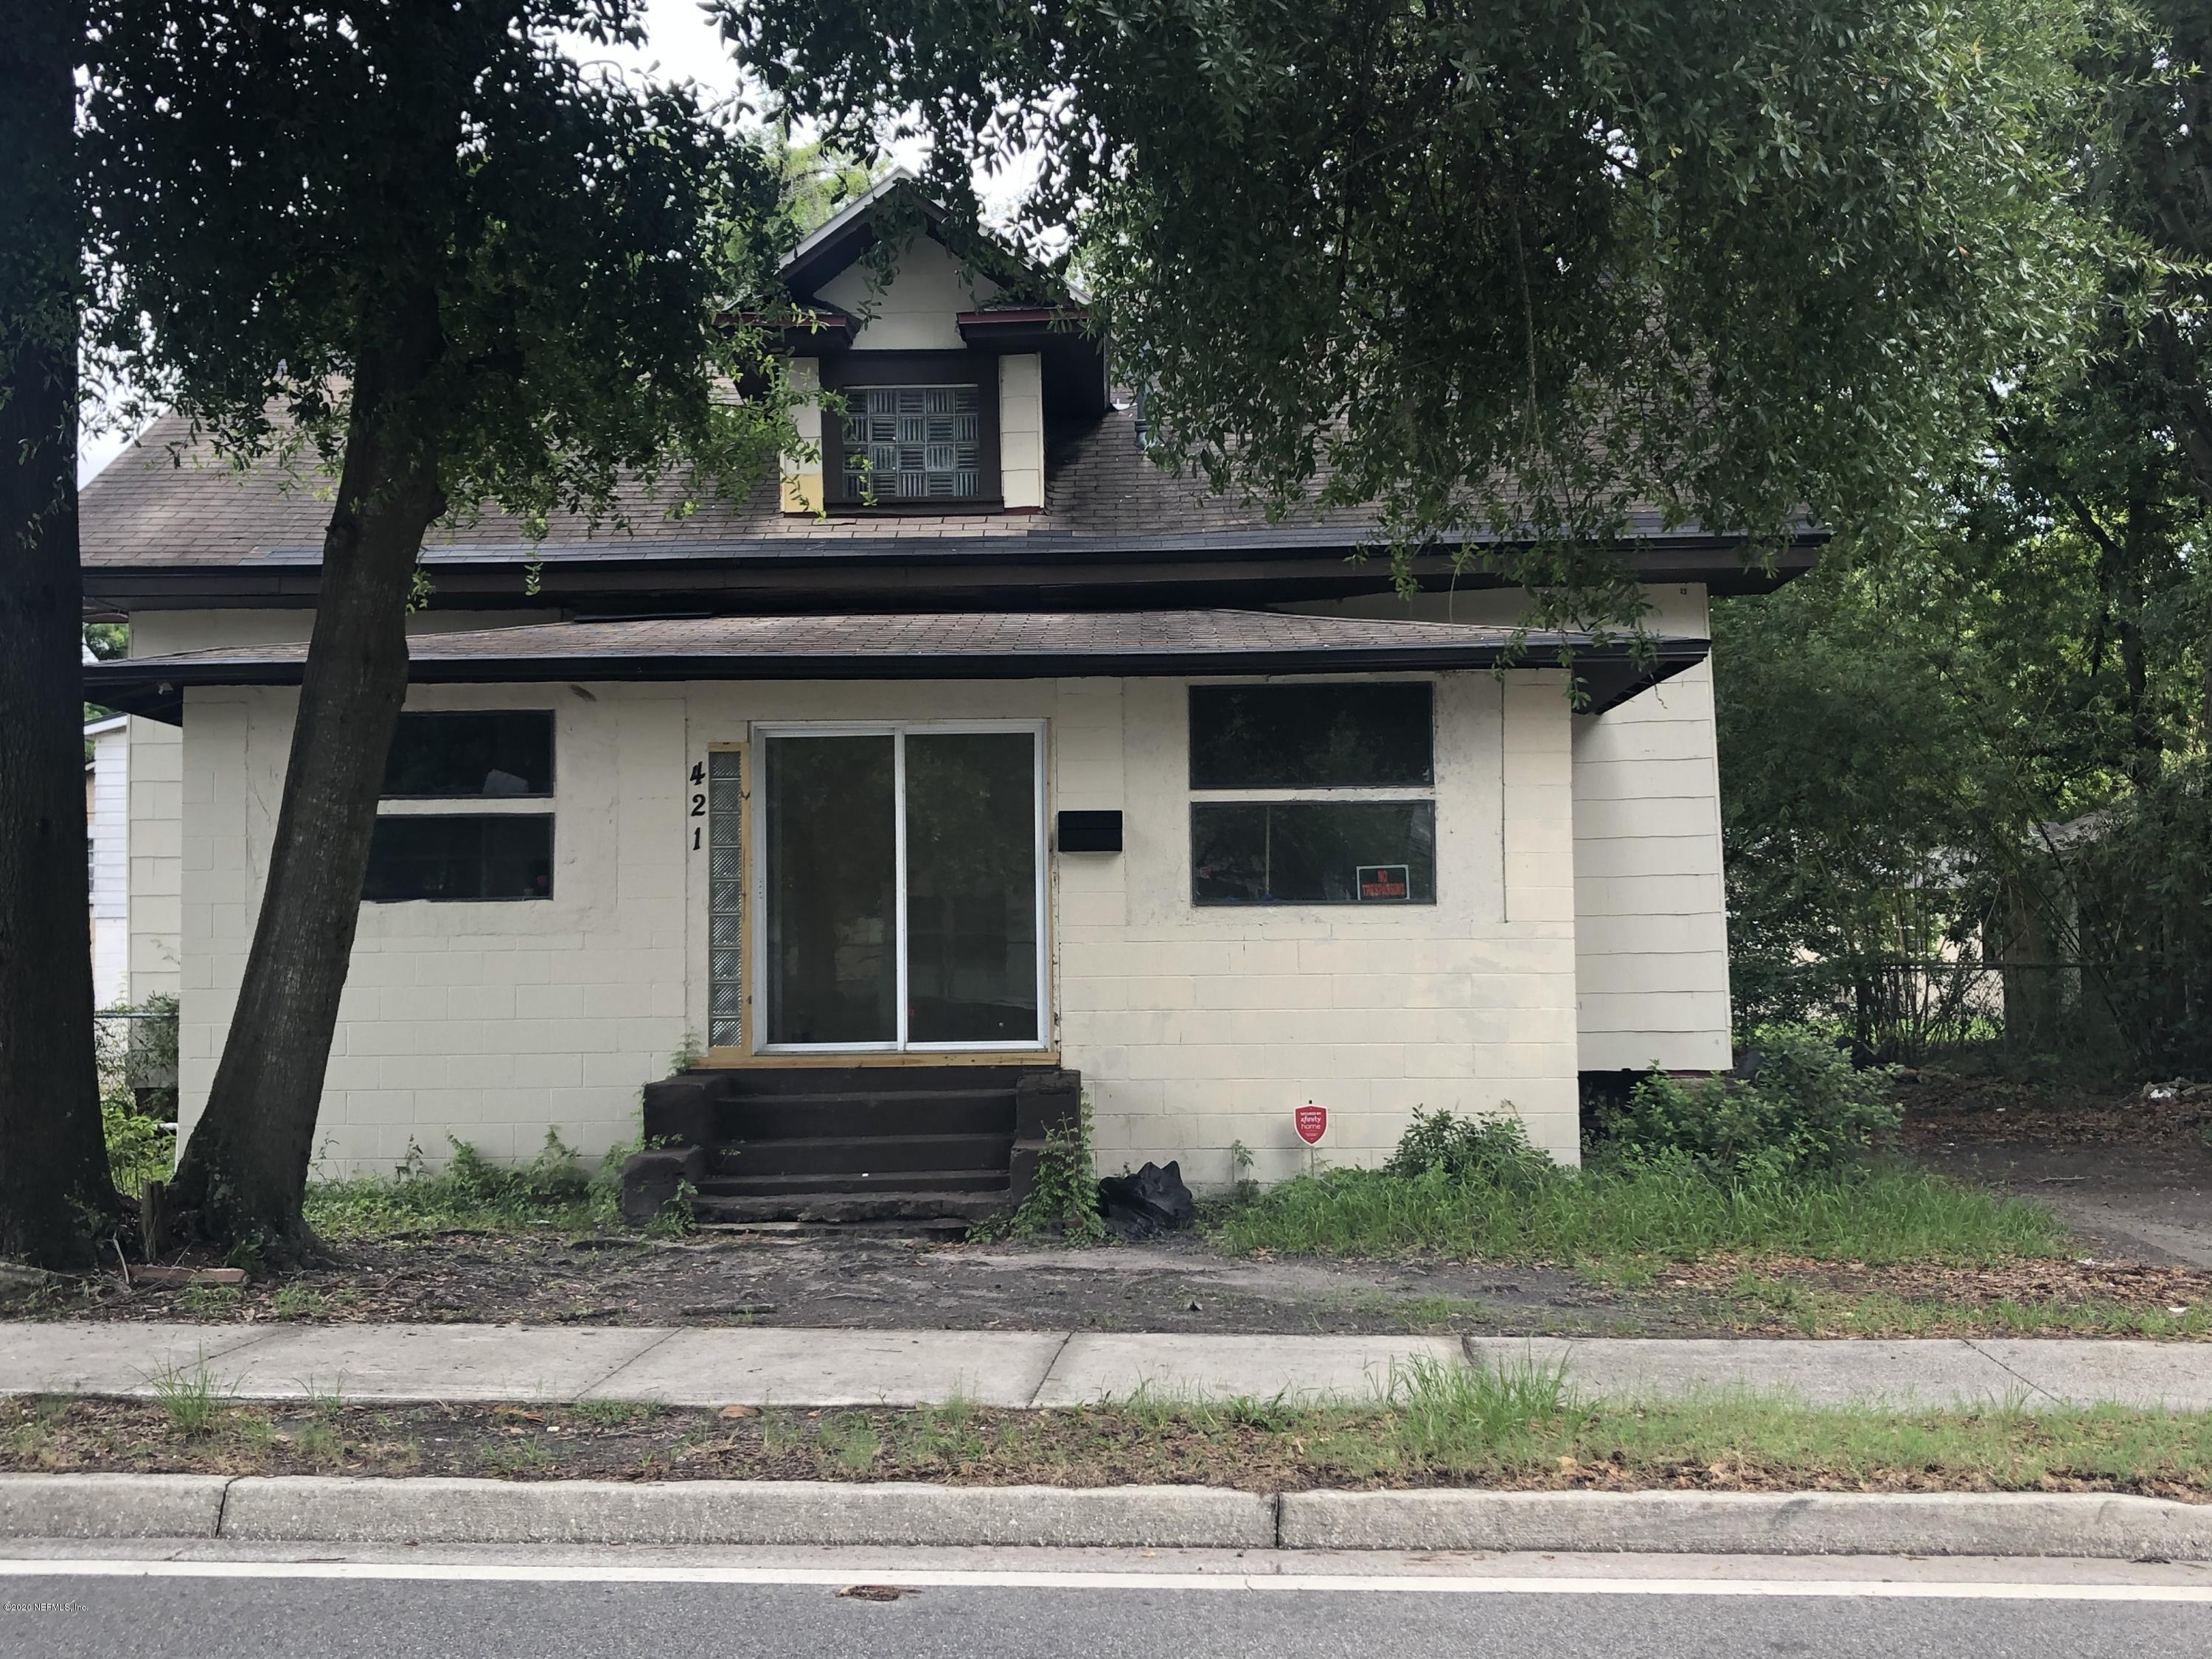 421 GOLFAIR, JACKSONVILLE, FLORIDA 32206, 4 Bedrooms Bedrooms, ,2 BathroomsBathrooms,Investment / MultiFamily,For sale,GOLFAIR,1057989